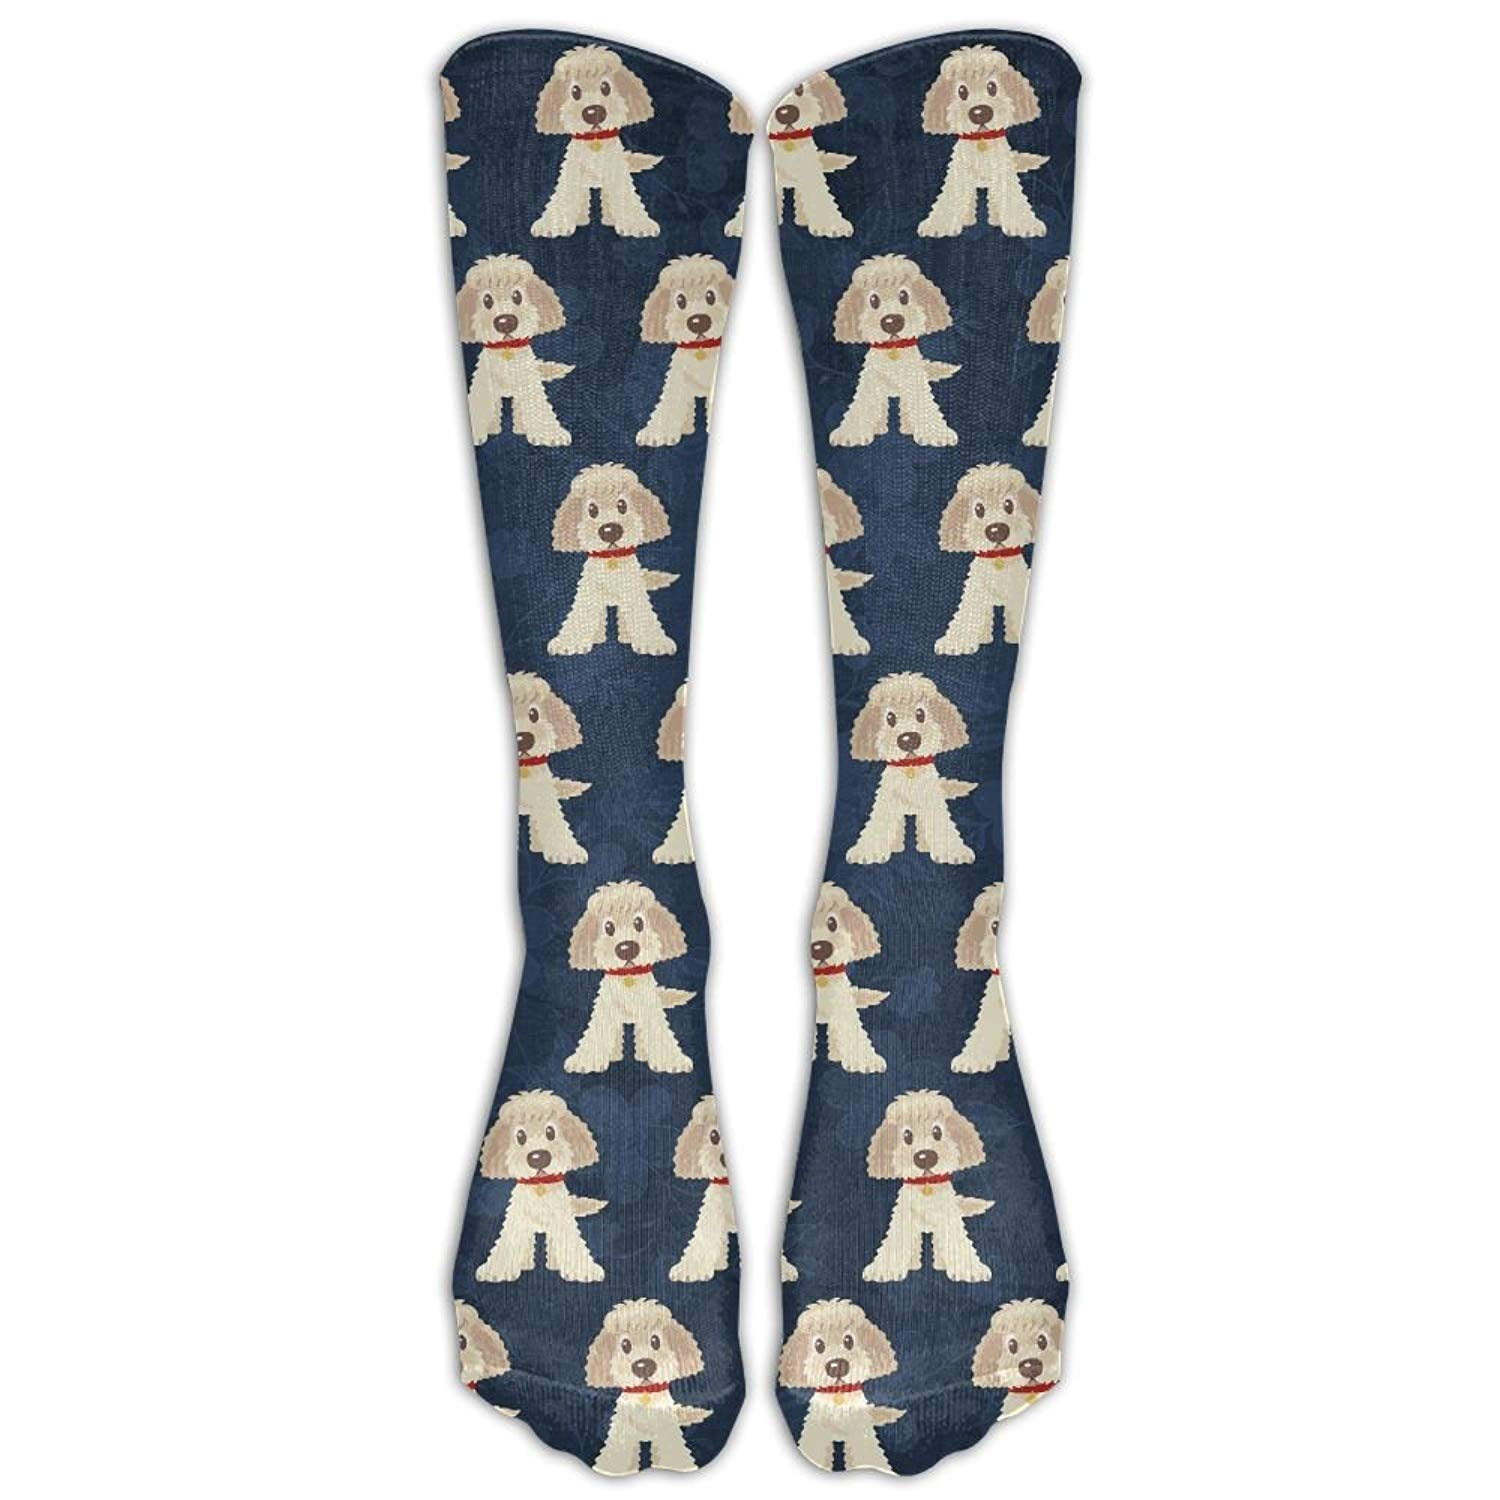 Unisex Goldendoodle Dogs Mid Calf Crew Socks Tube Stockings Boot Socks One Size